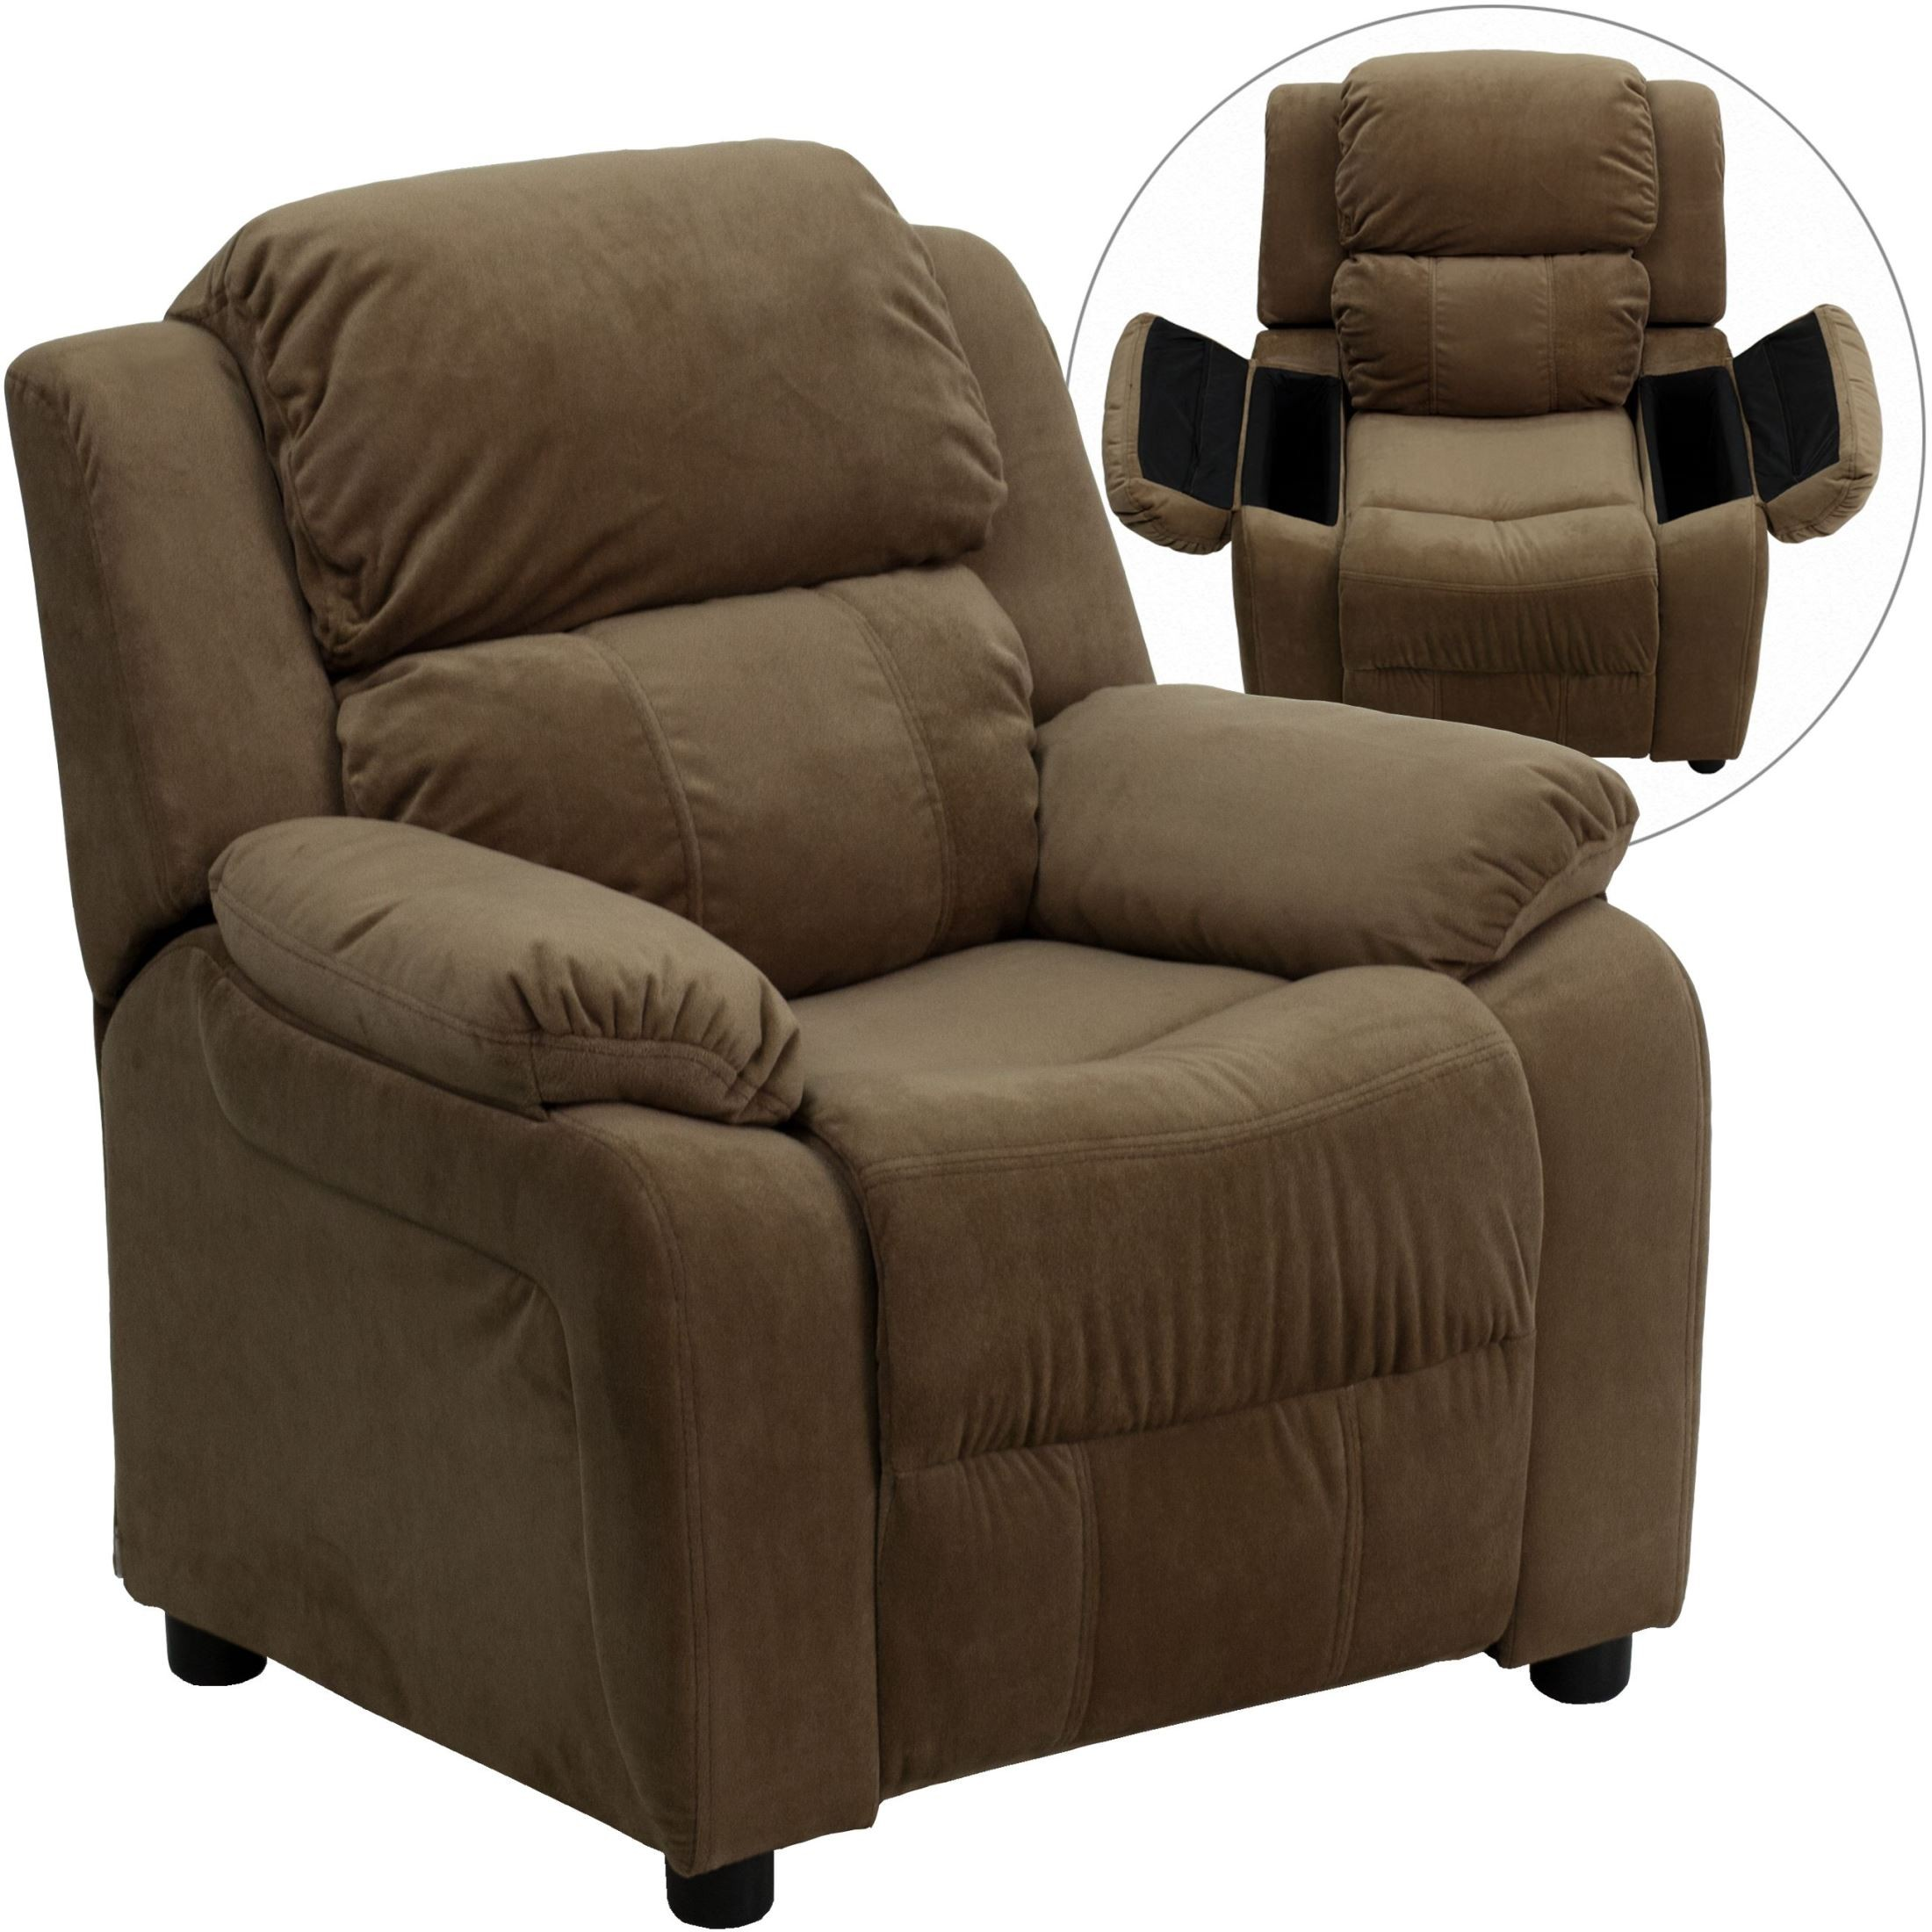 Toddler Soft Chairs Deluxe Heavily Padded Brown Kids Storage Arm Recliner From